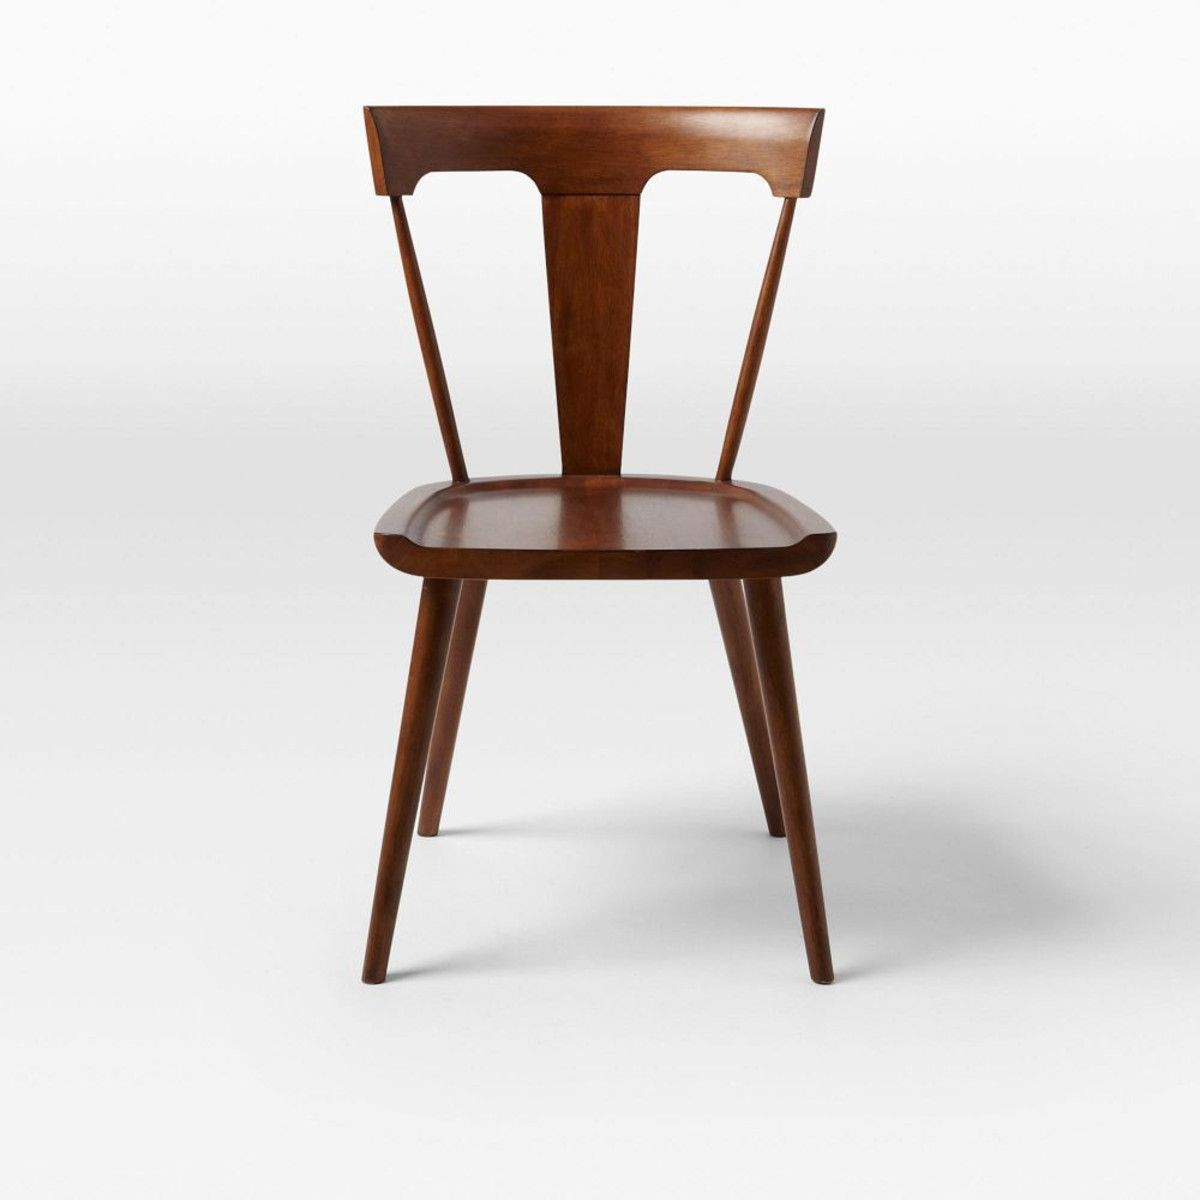 Splat Dining Chair  Kitchen chairs, Dining chair set, Dining chairs